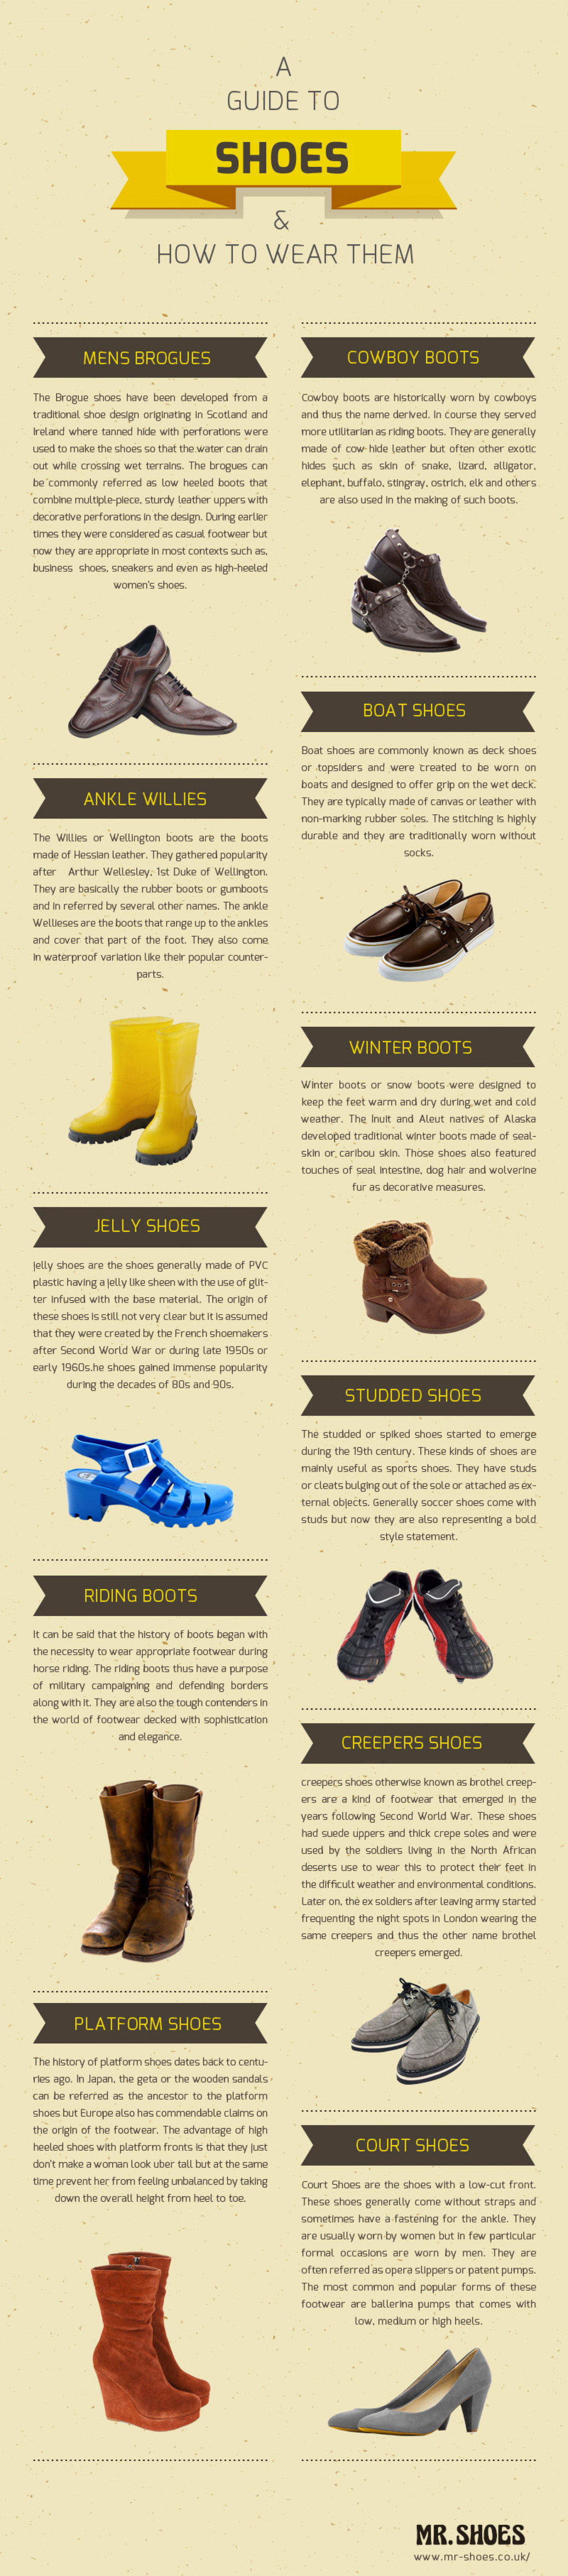 A guide to Shoes and How to wear them Infographic